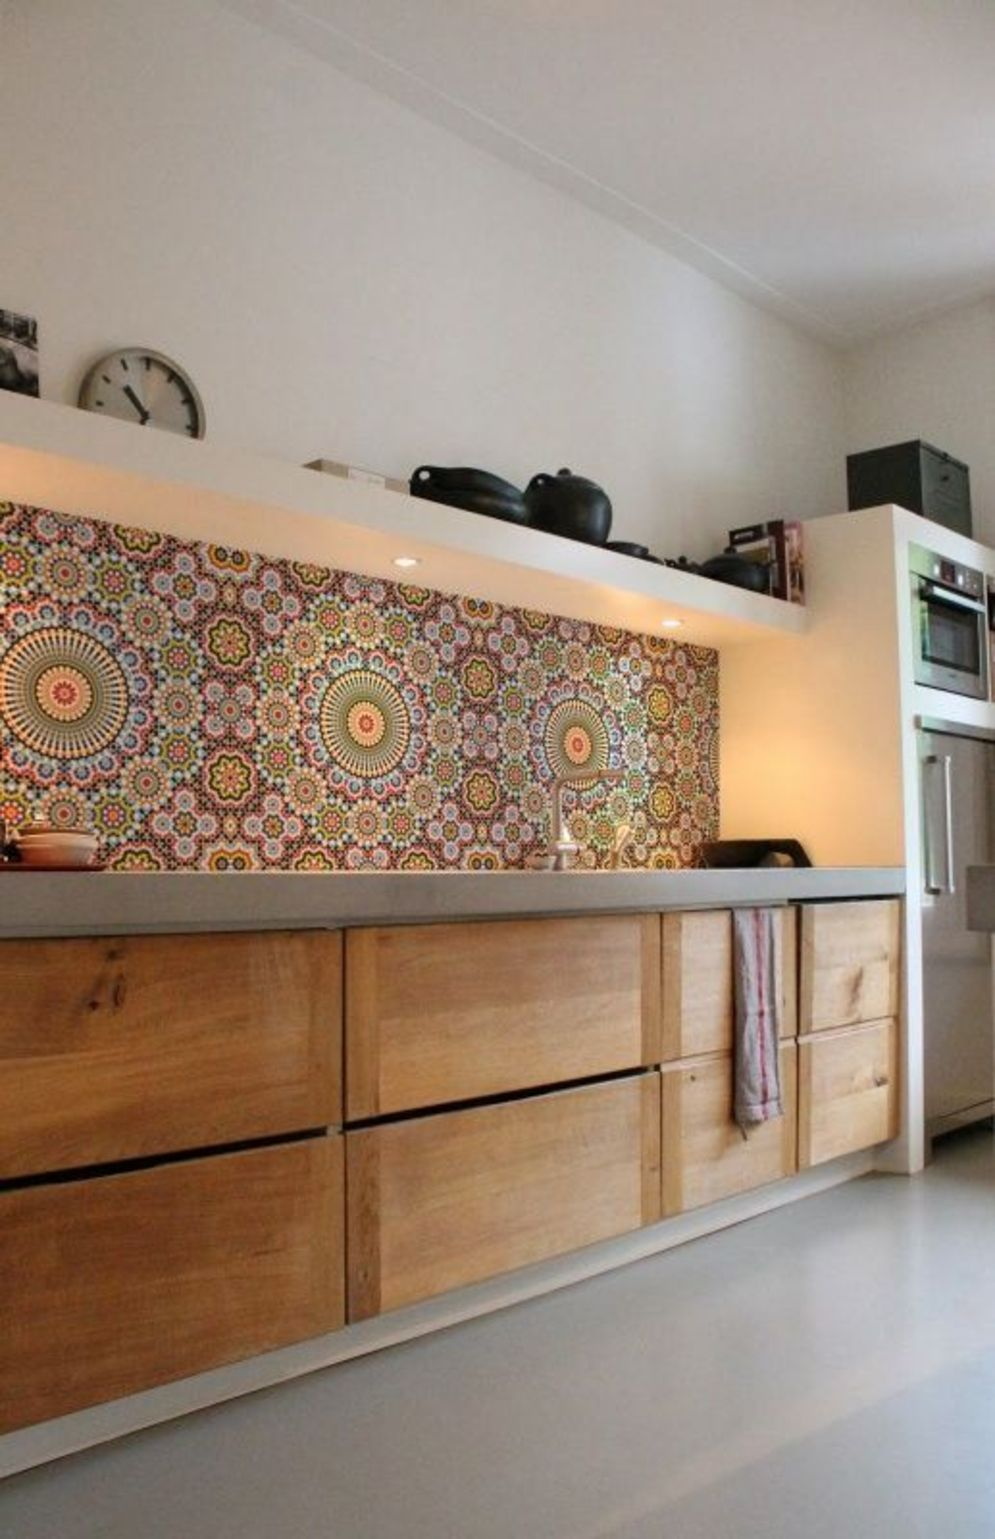 Beautiful kitchen backsplash designs giving special accents in the house Image 10